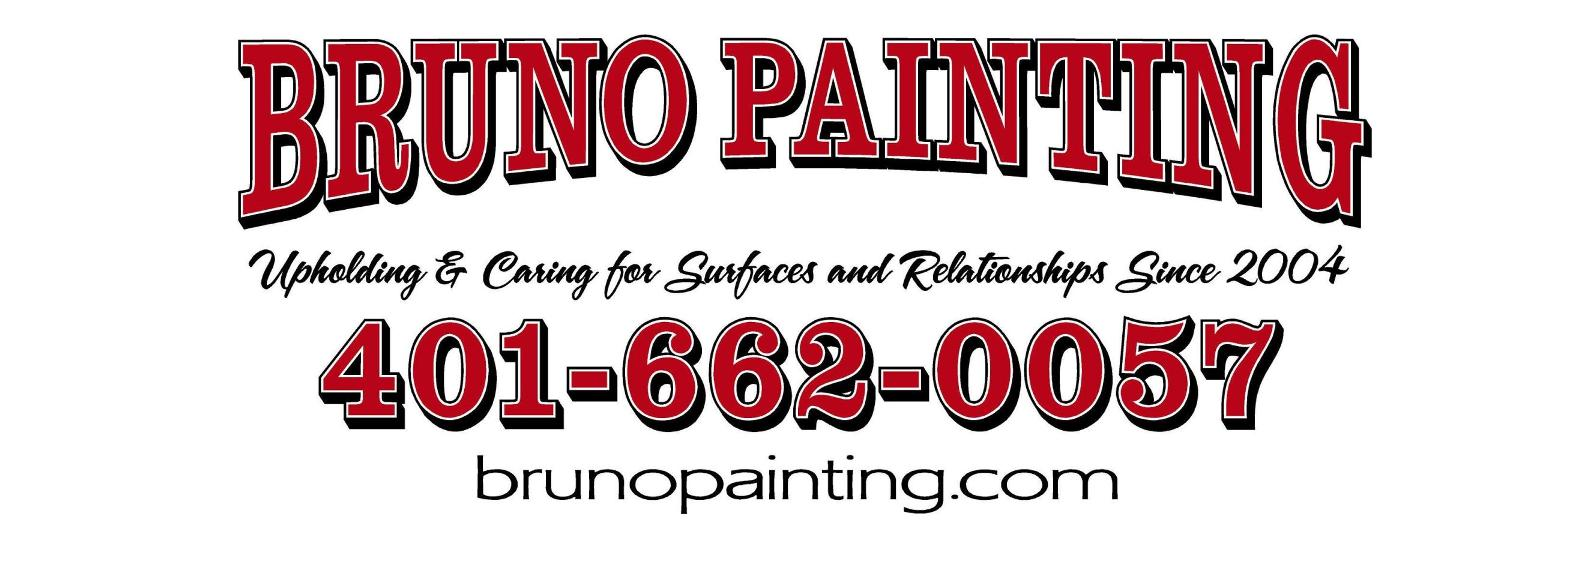 Bruno Painting (Corporate)